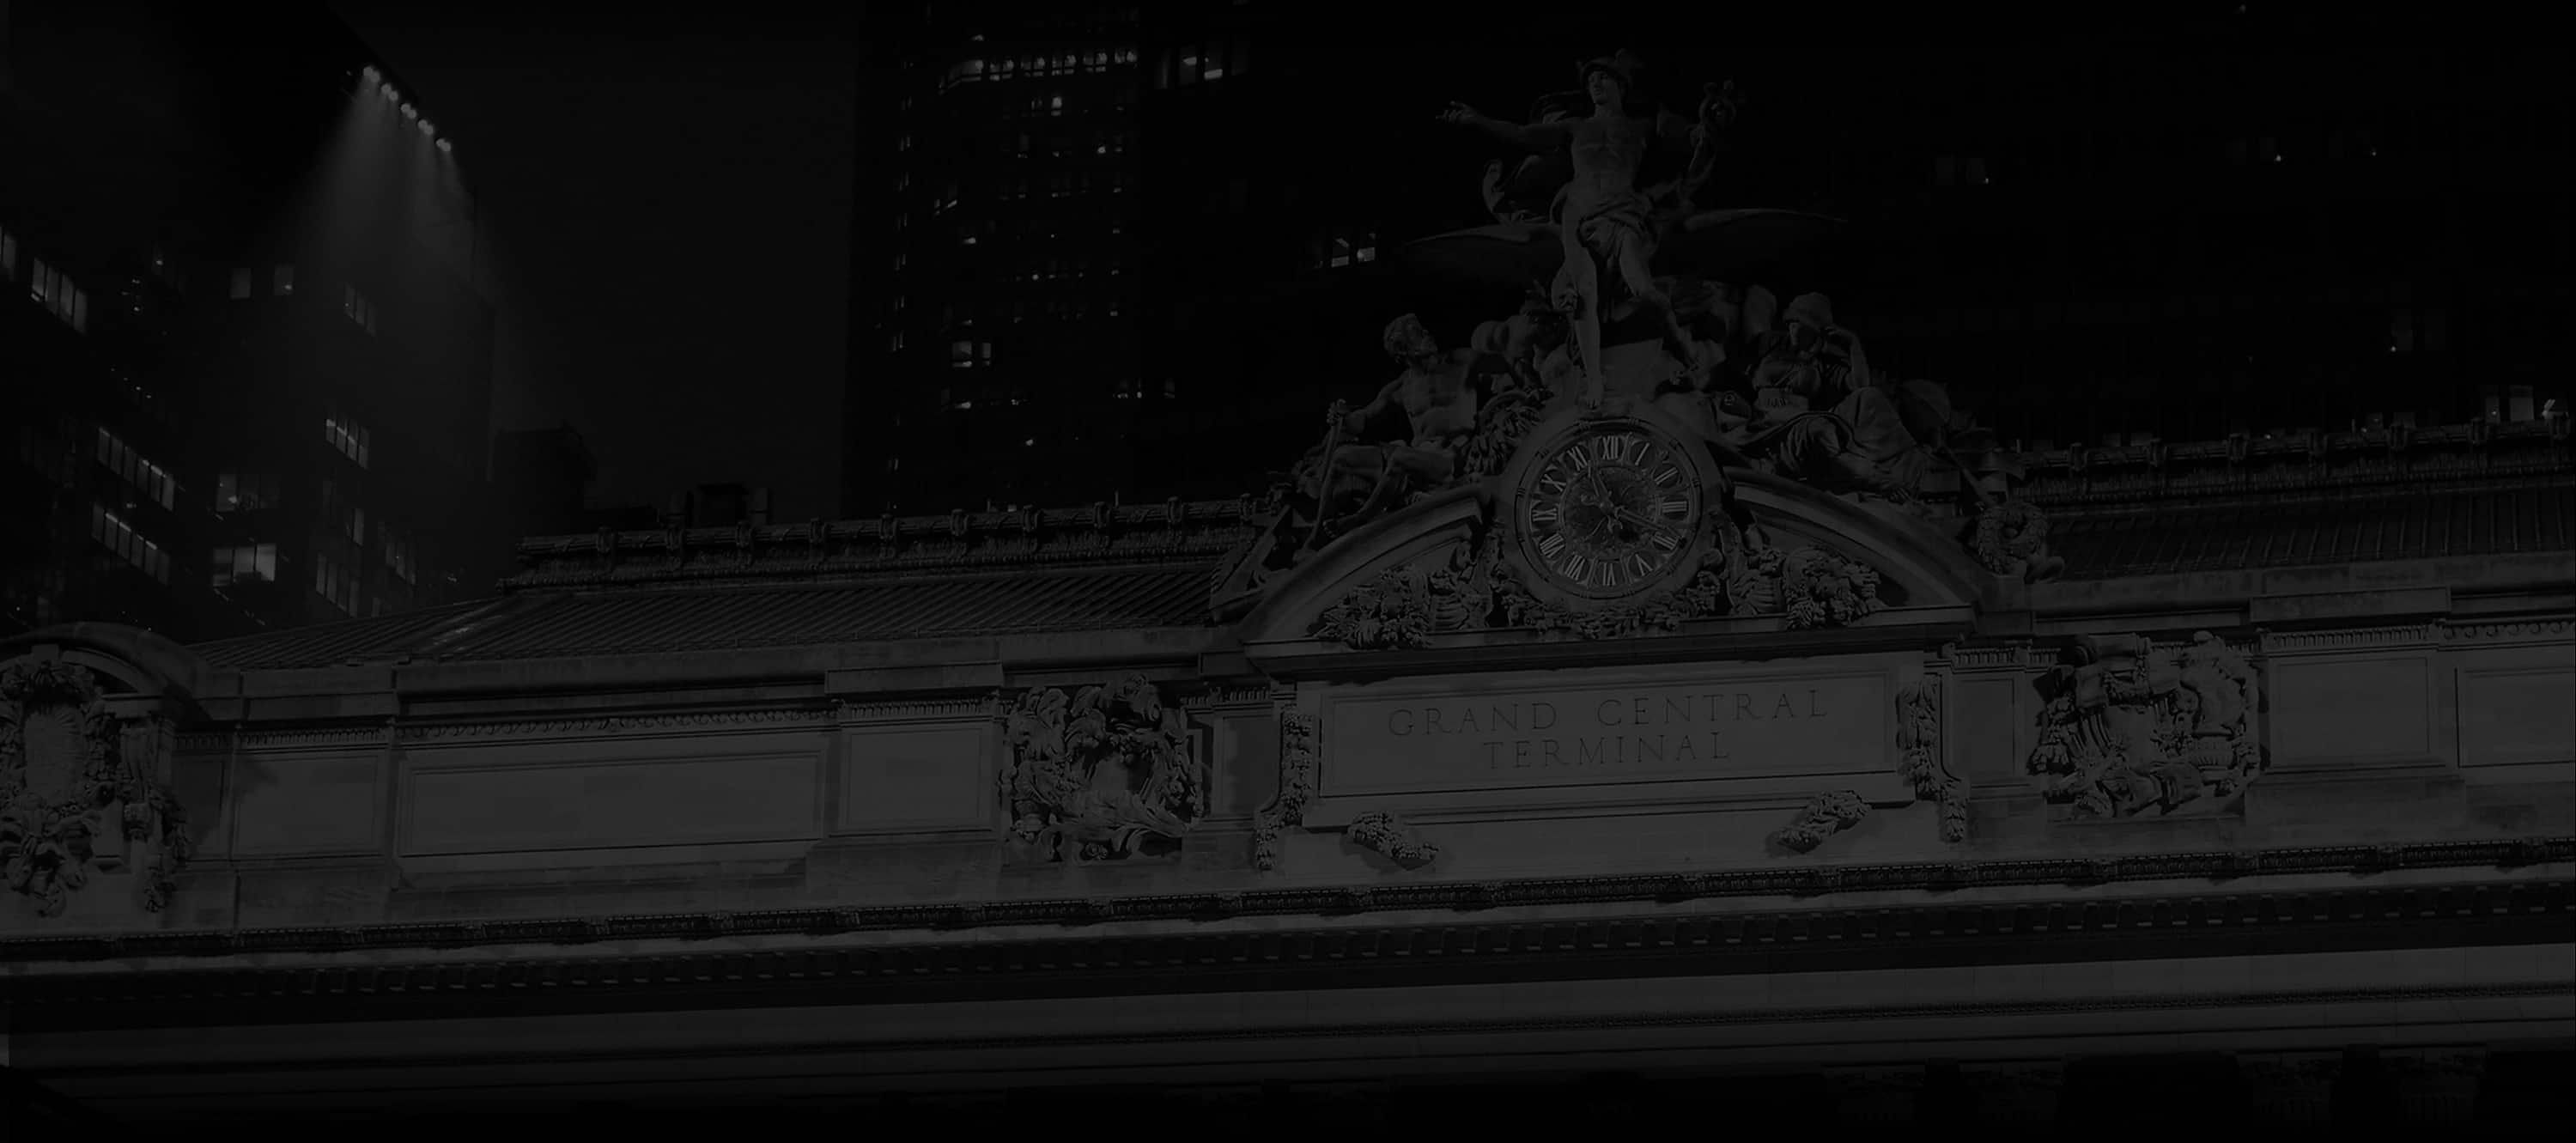 A dark black-and-white photo of the front of Grand Central Station in NYC.